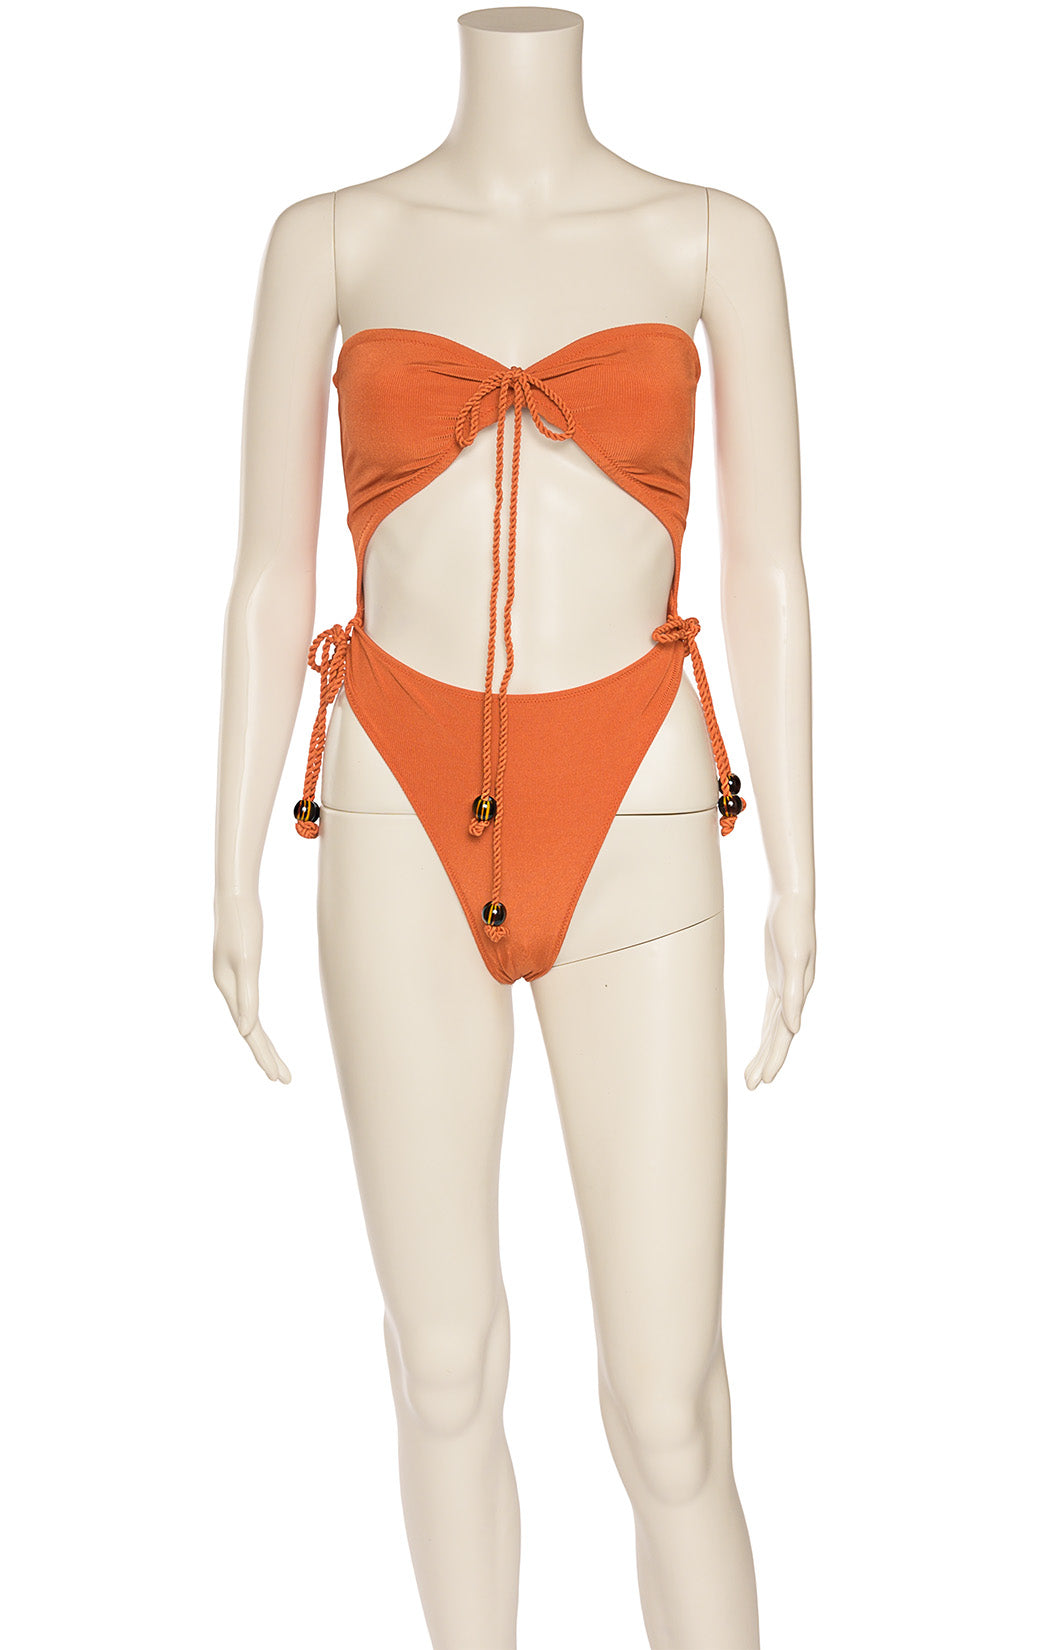 Front view of TROPIC OF C  One piece bathing suit Size: Small